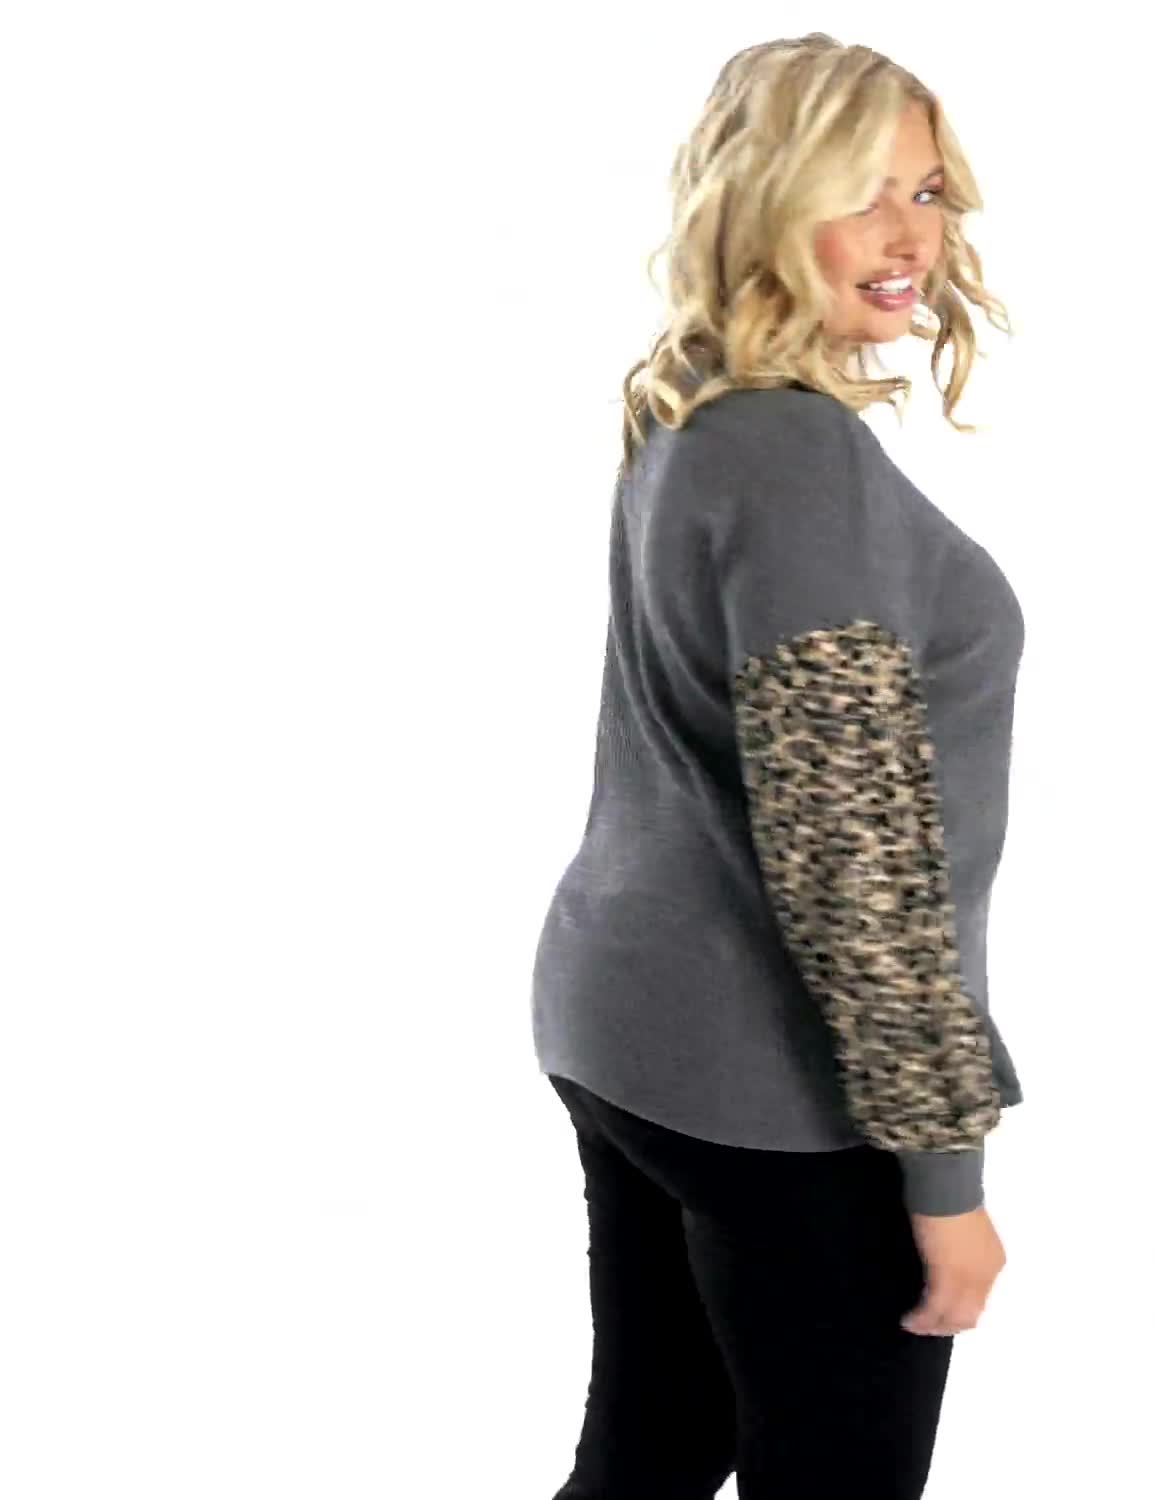 Y Henley Mixed Animal Thermal Knit Top - Plus - Video